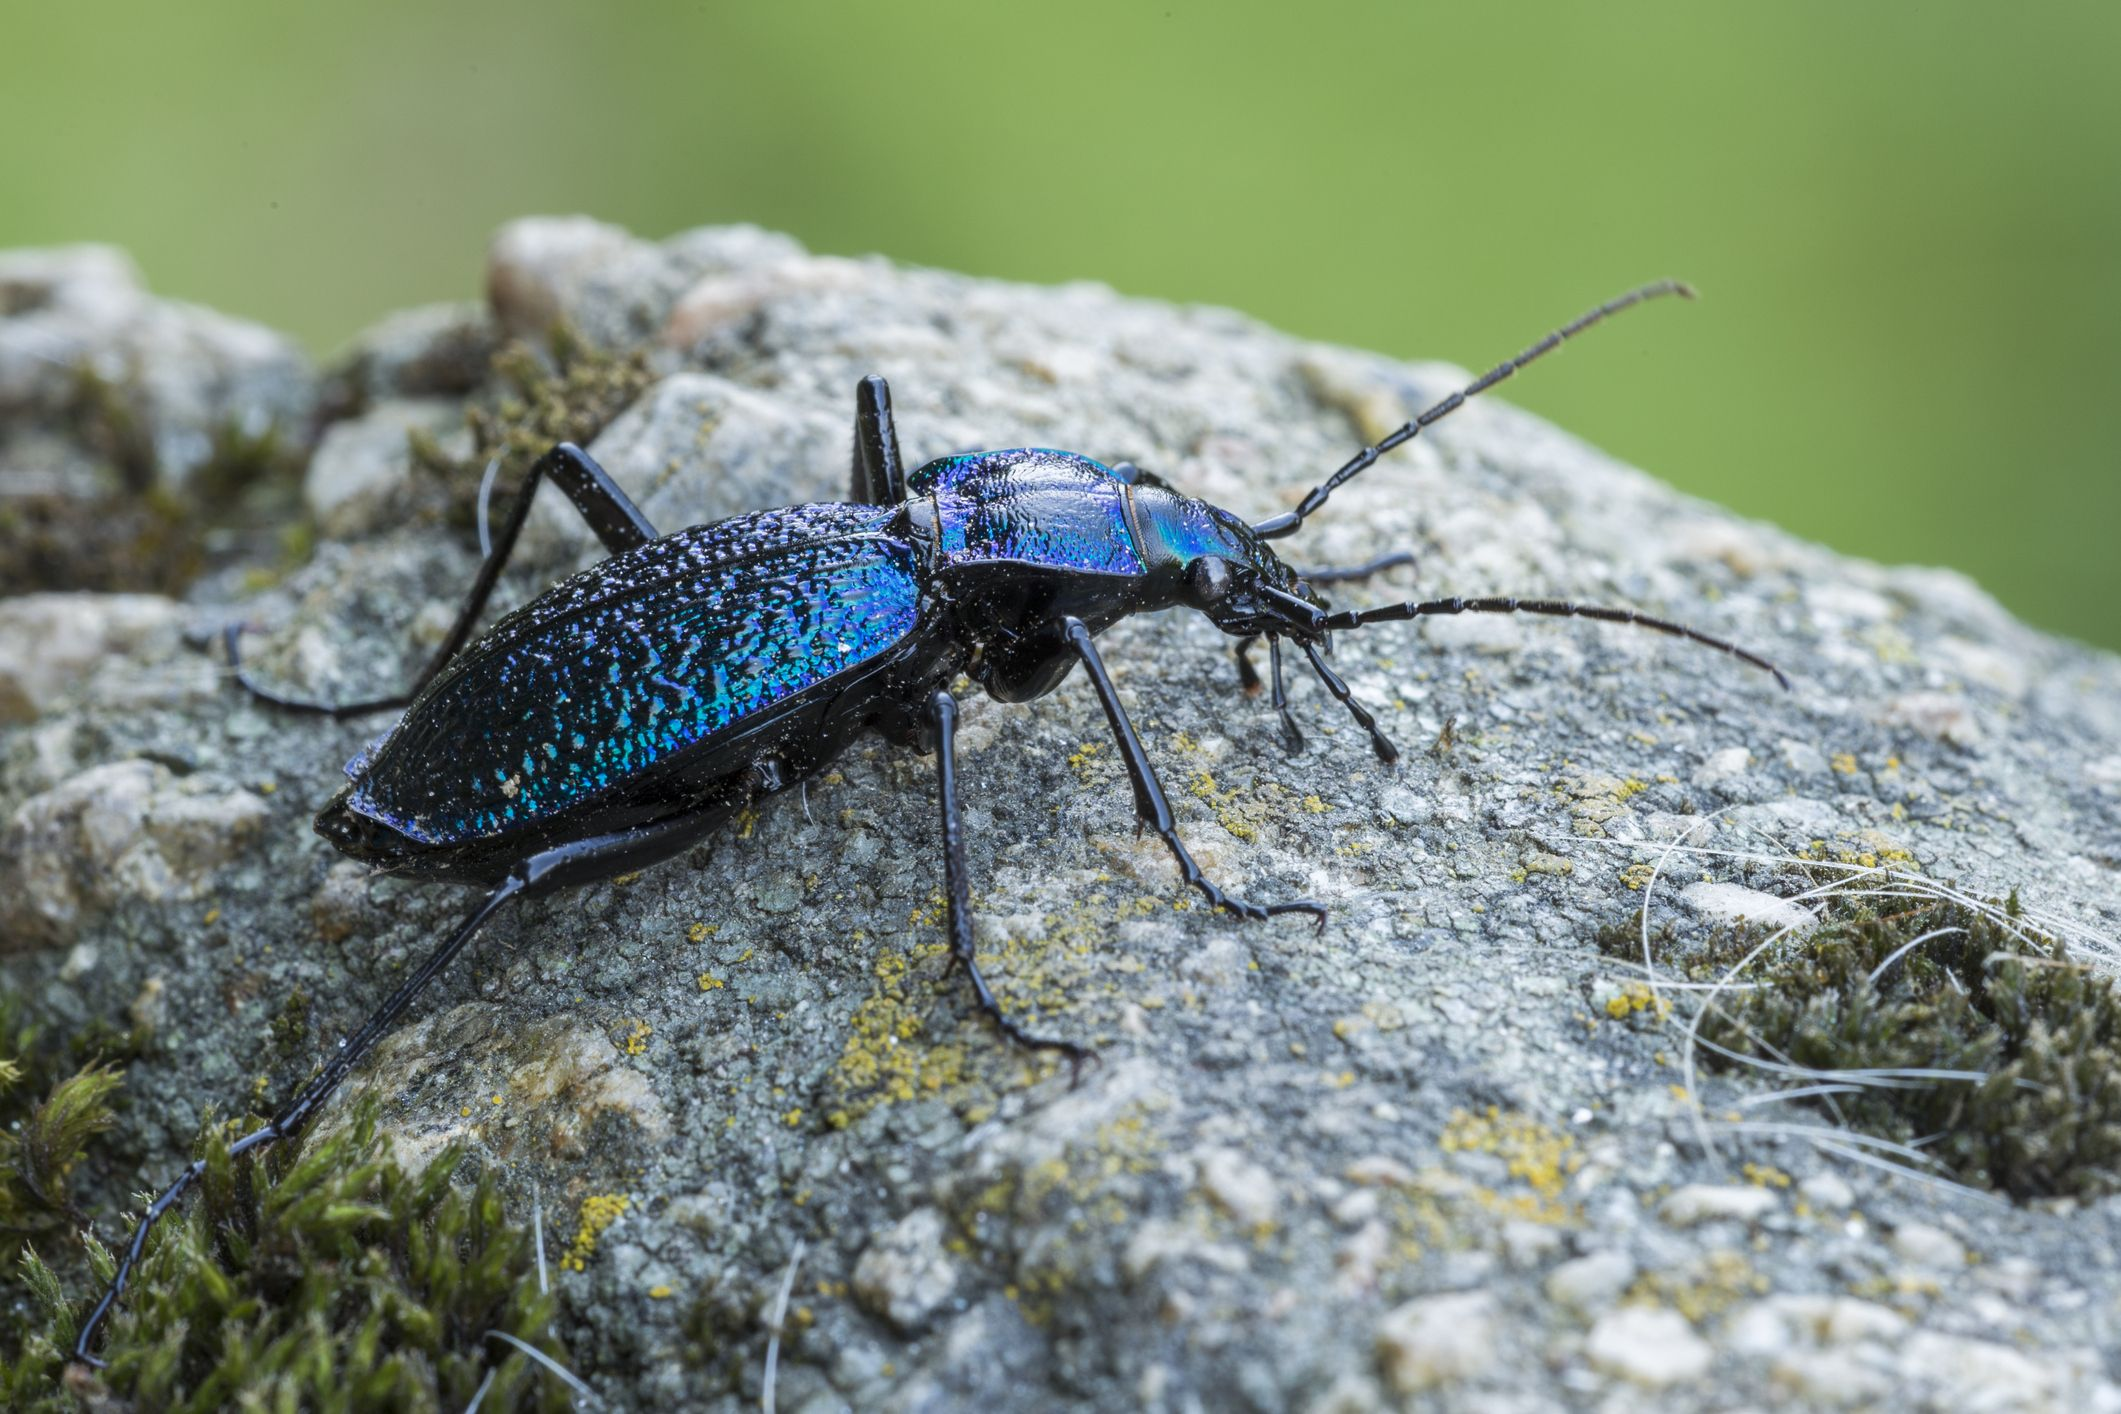 10 Beneficial Insects That Help Plants - Helpful Bugs That Eat Aphids